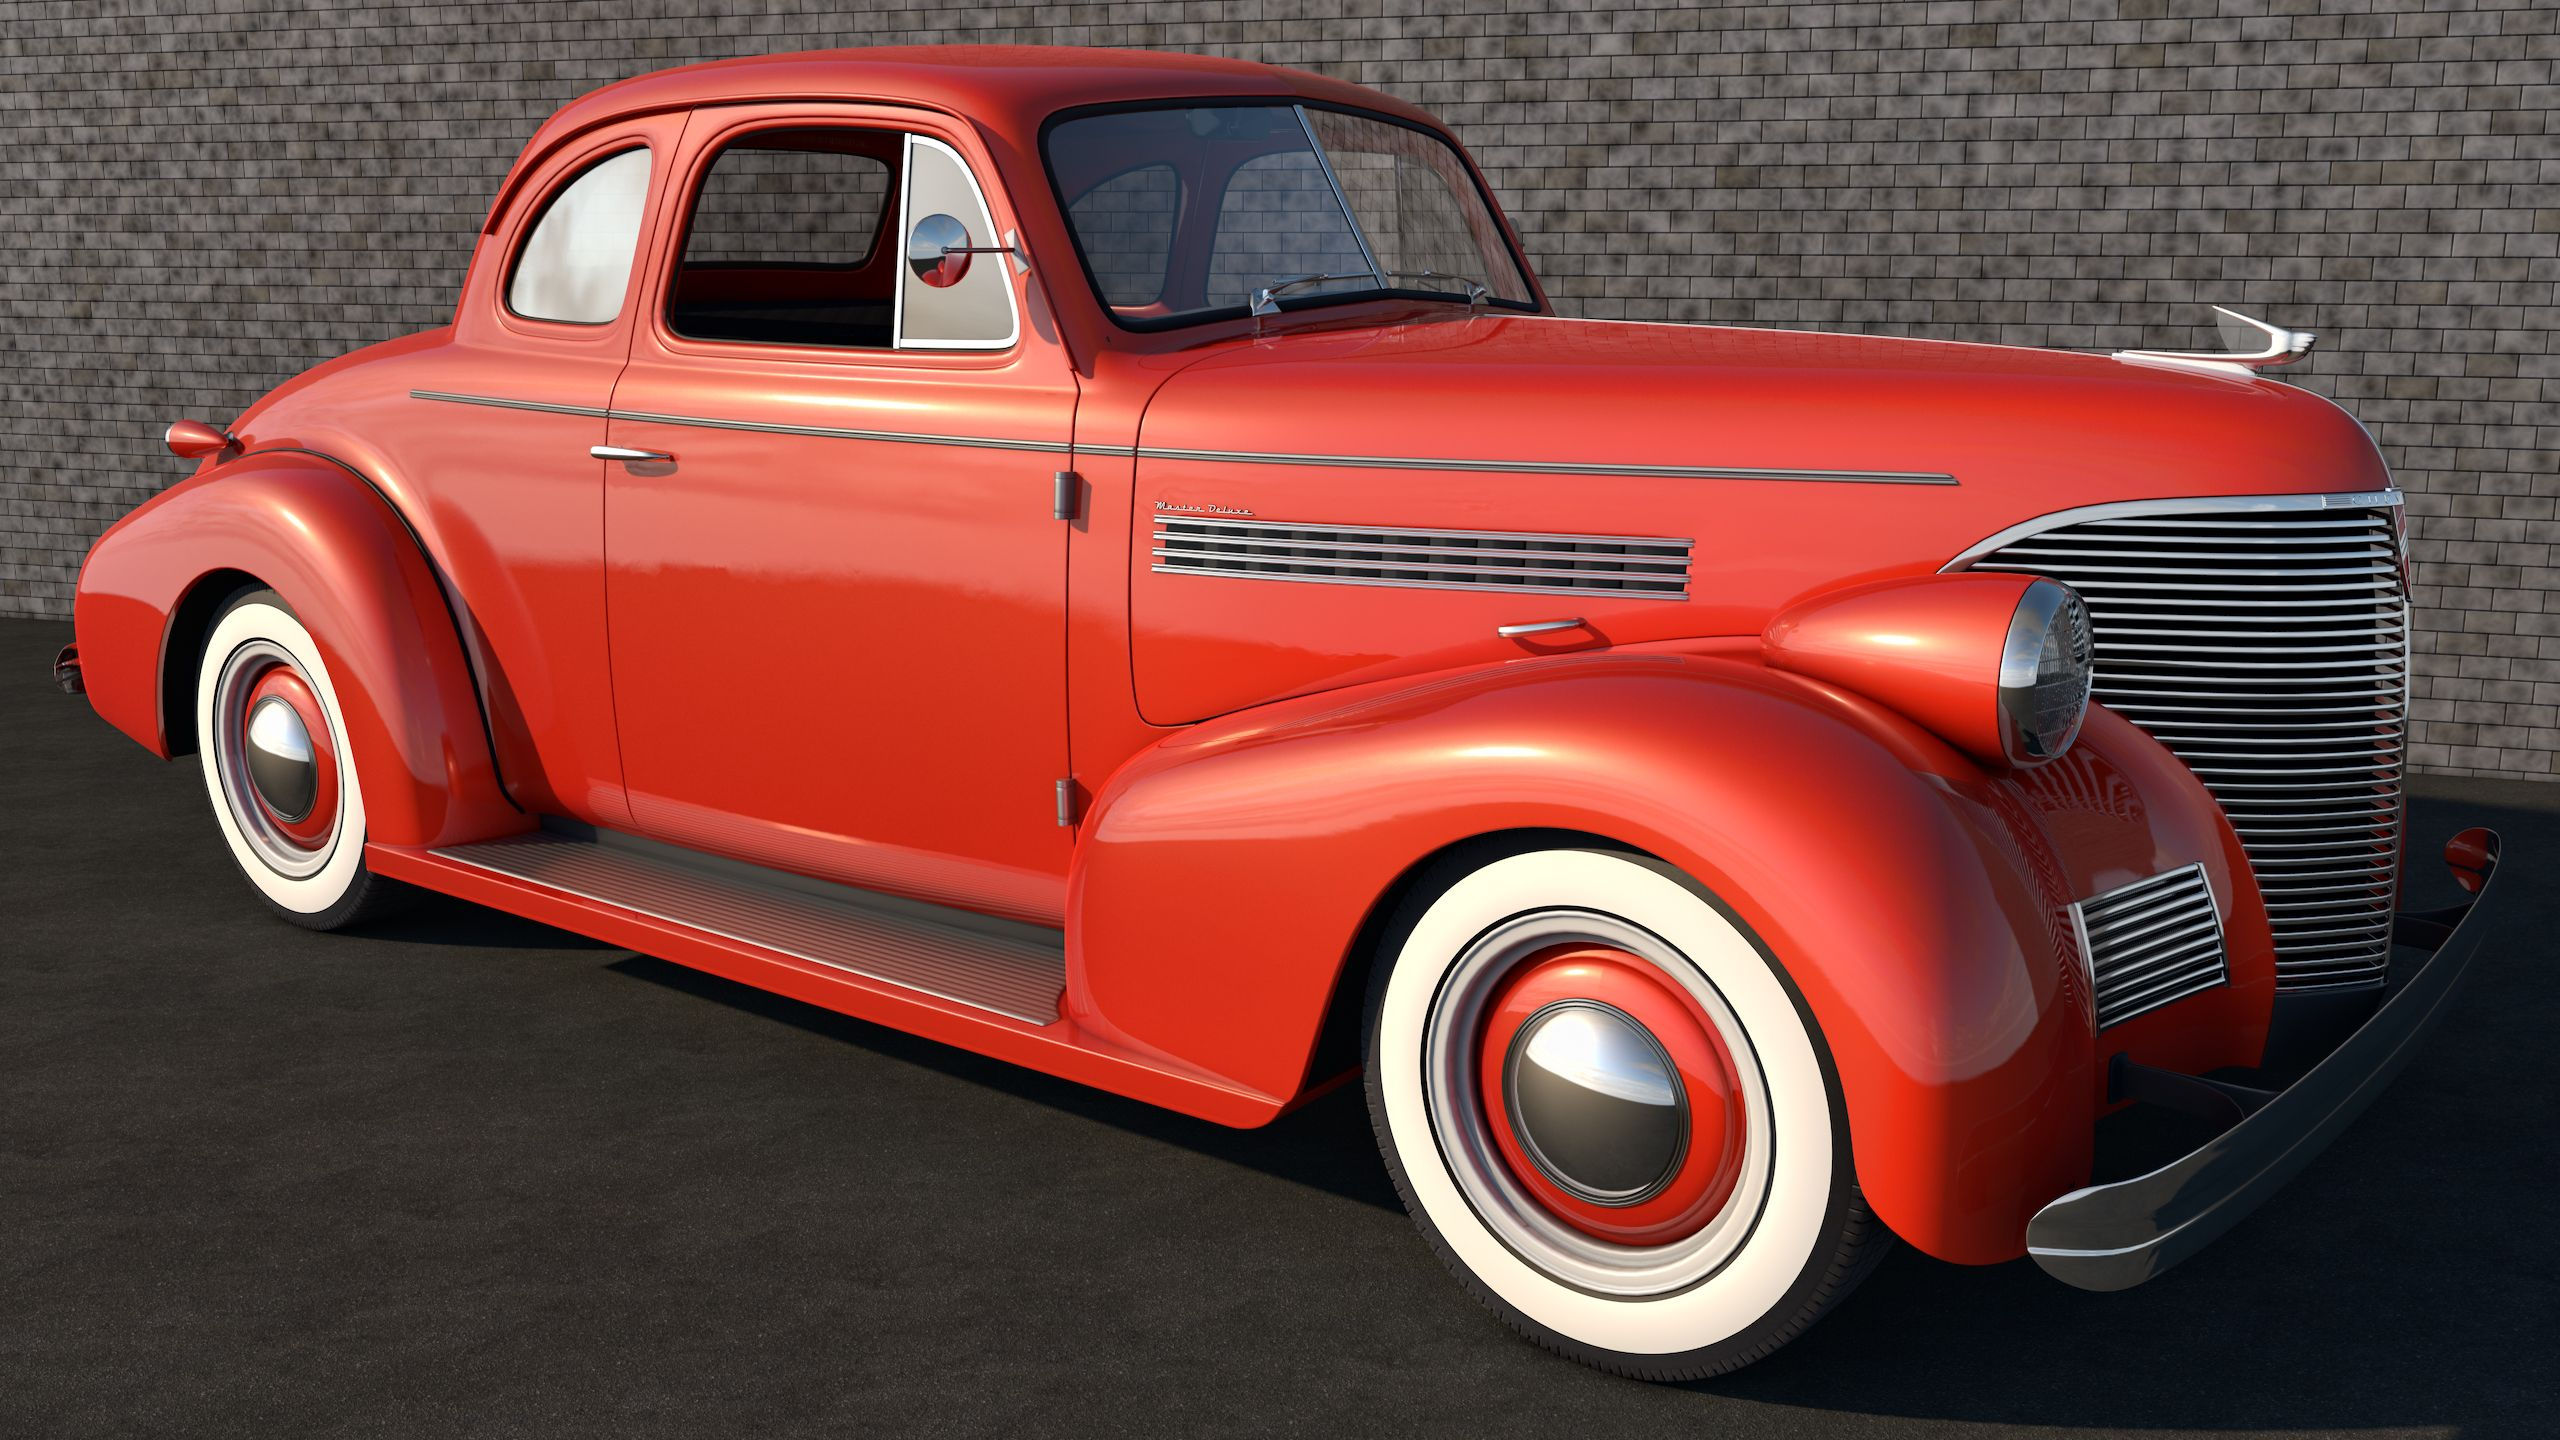 1939 Chevrolet Master Deluxe Coupe By Samcurry On Deviantart Chevrolet Classic Cars Trucks Hot Rods Classy Cars